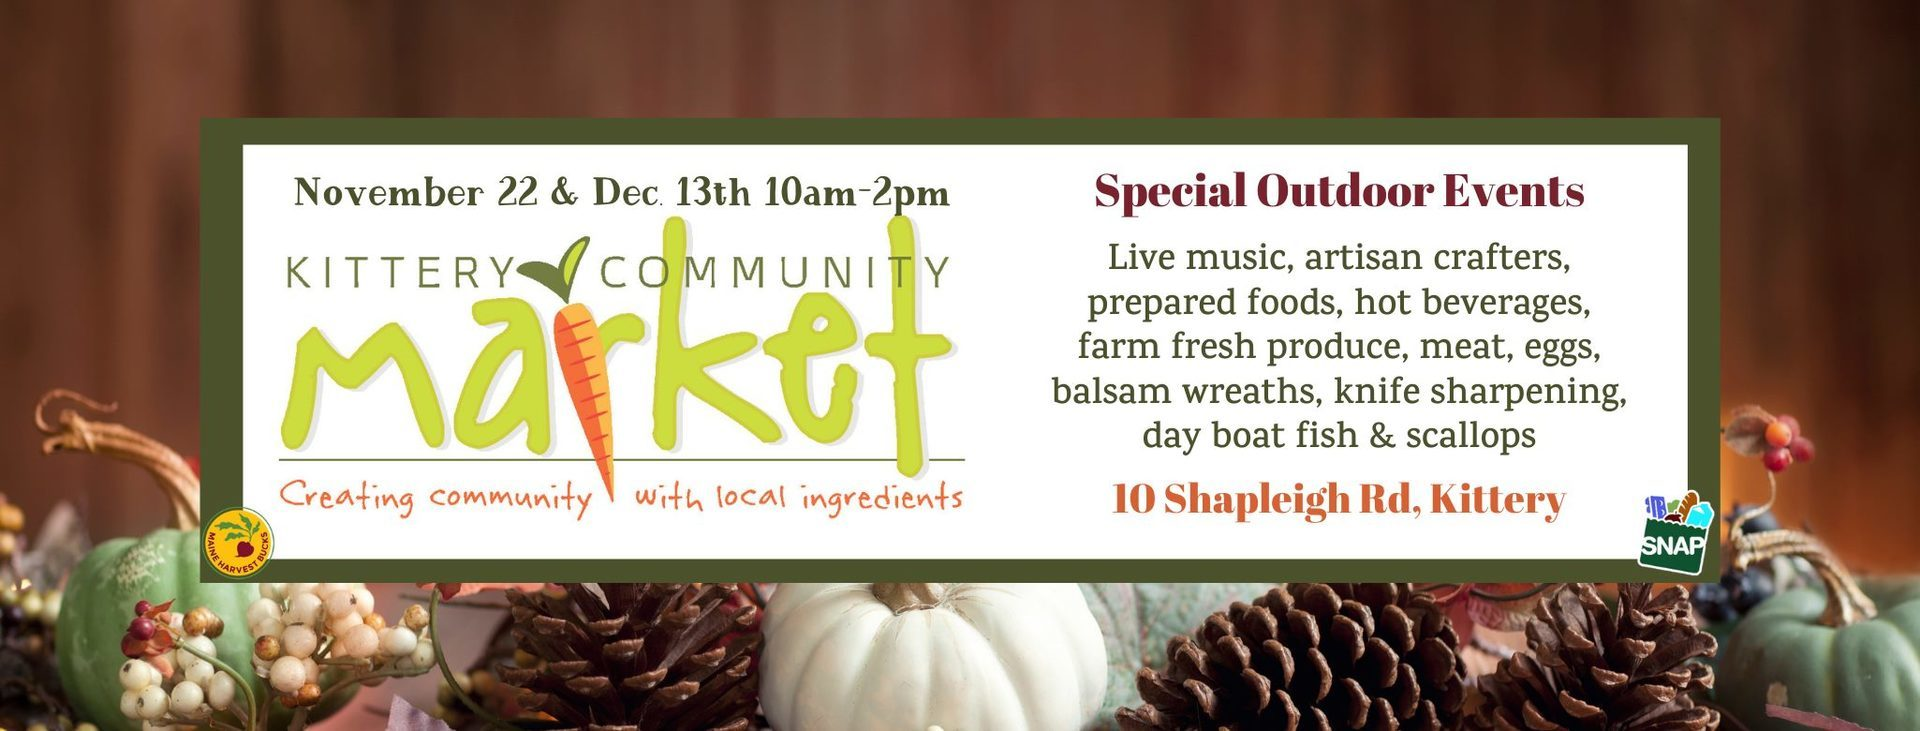 The Kittery Community Market is bringing the tradition of the European outdoor winter market experience to Kittery with two special events on November 22nd and December 13th. 🥕💚